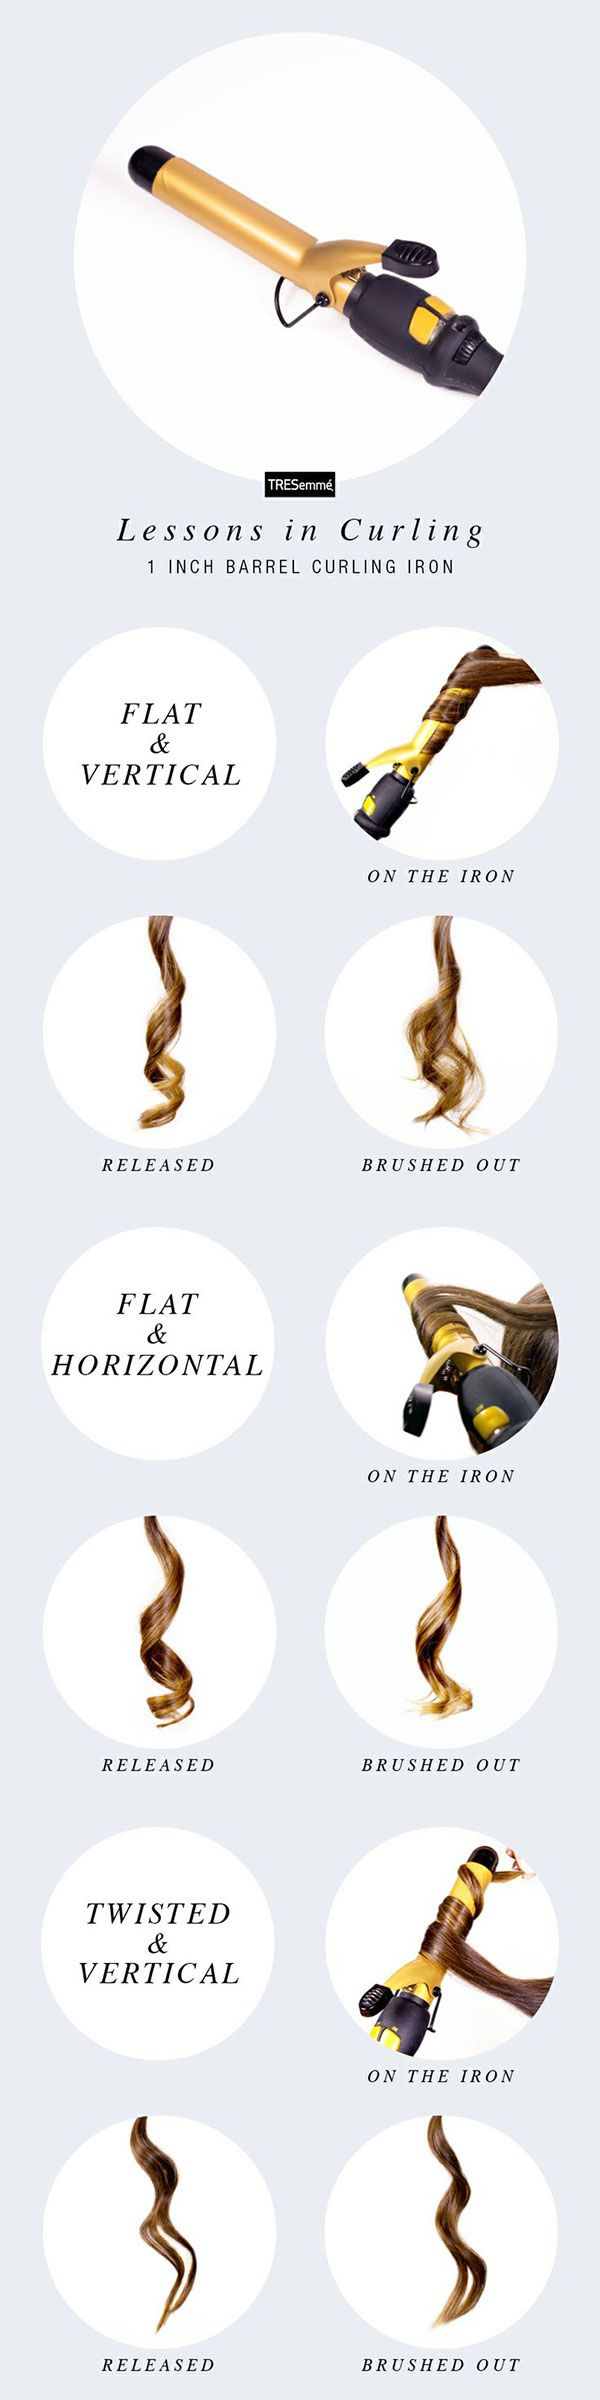 24 Hacks, Tips and Tricks On How To Curl Your Hair  | Gurl.com